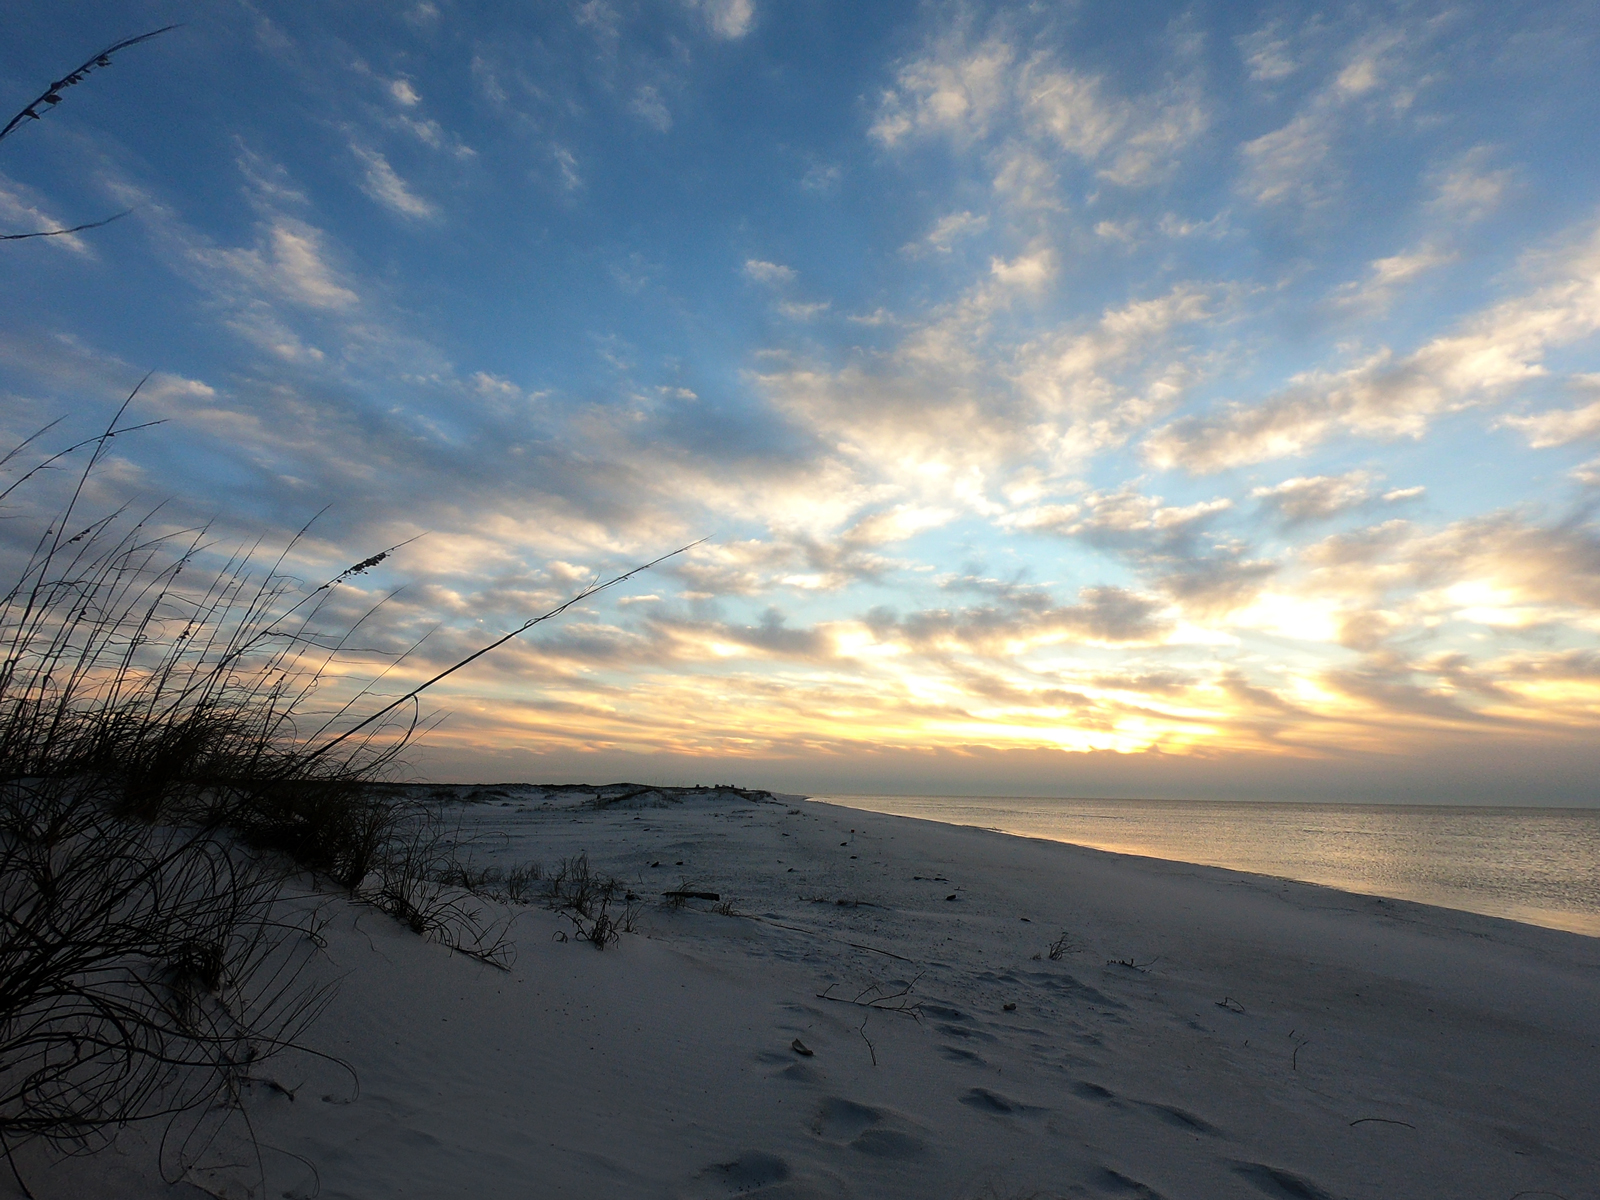 Sunrise at Gulf Islands National Seashore beach camping in Pensacola, Florida at Fort Pickens